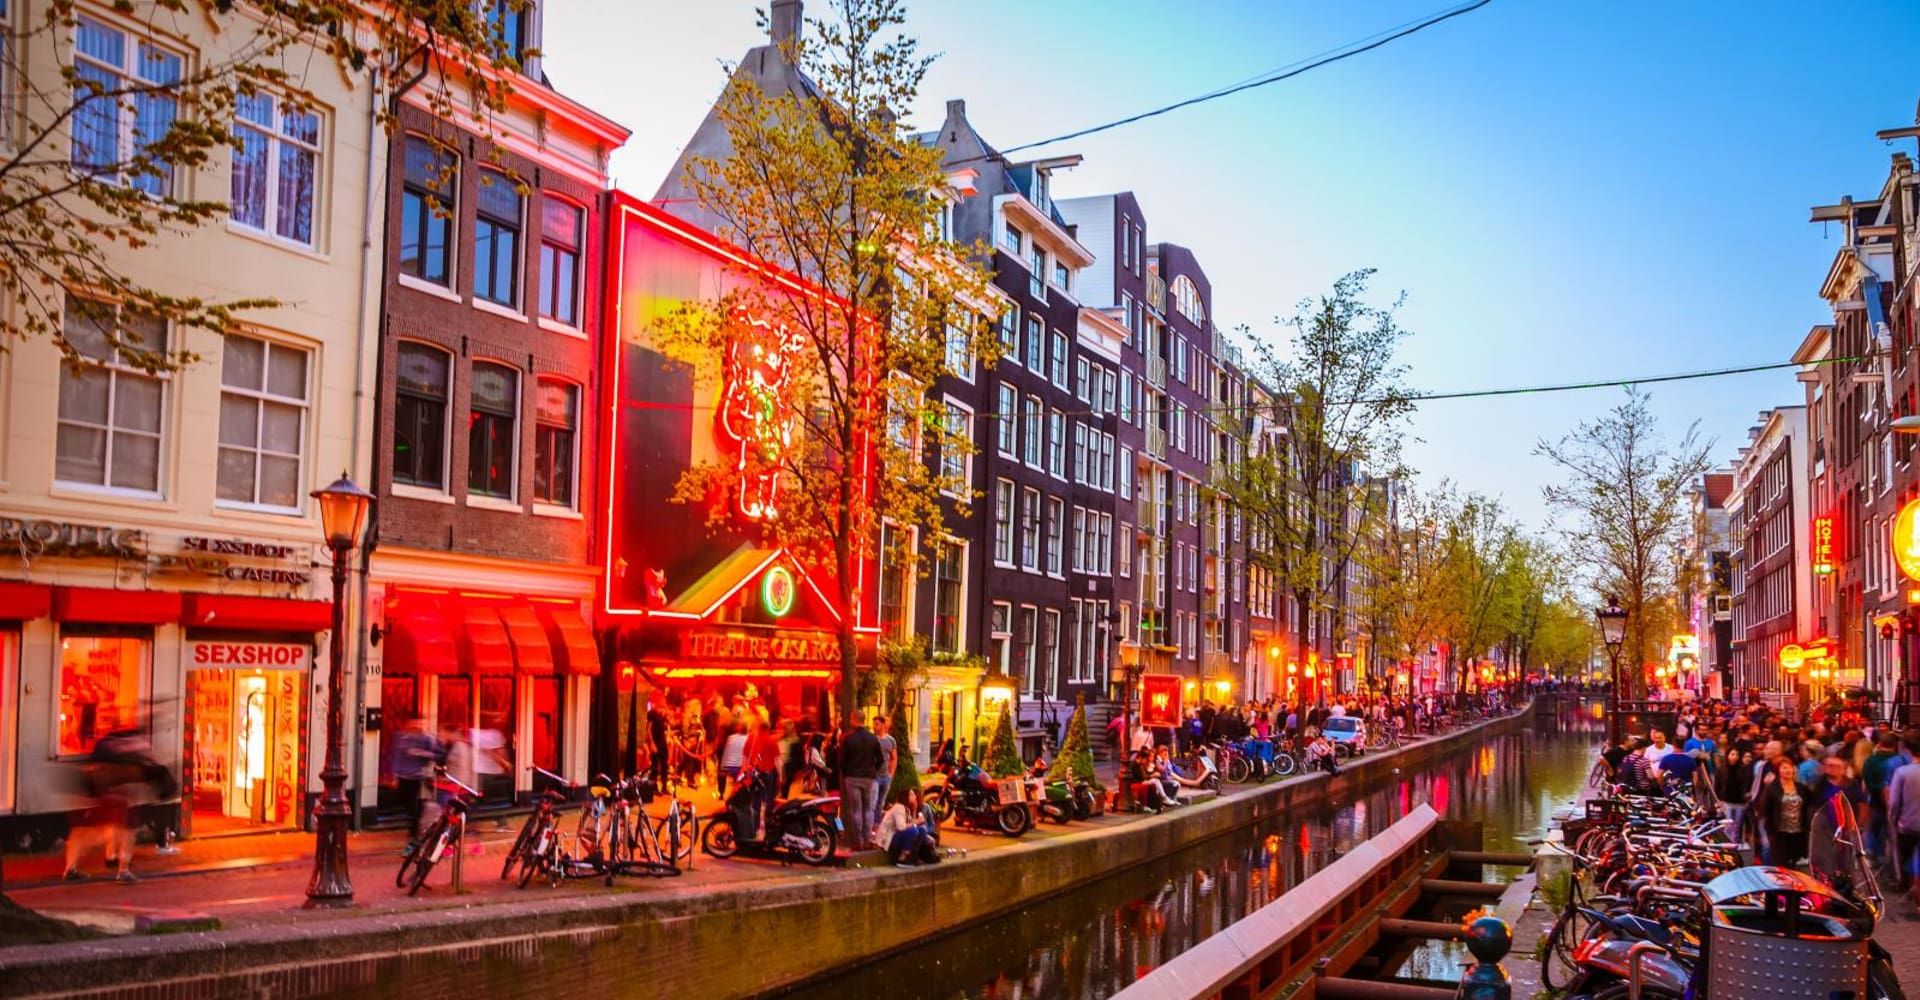 The Red Light District - The Toren Amsterdam - By the Pavilions